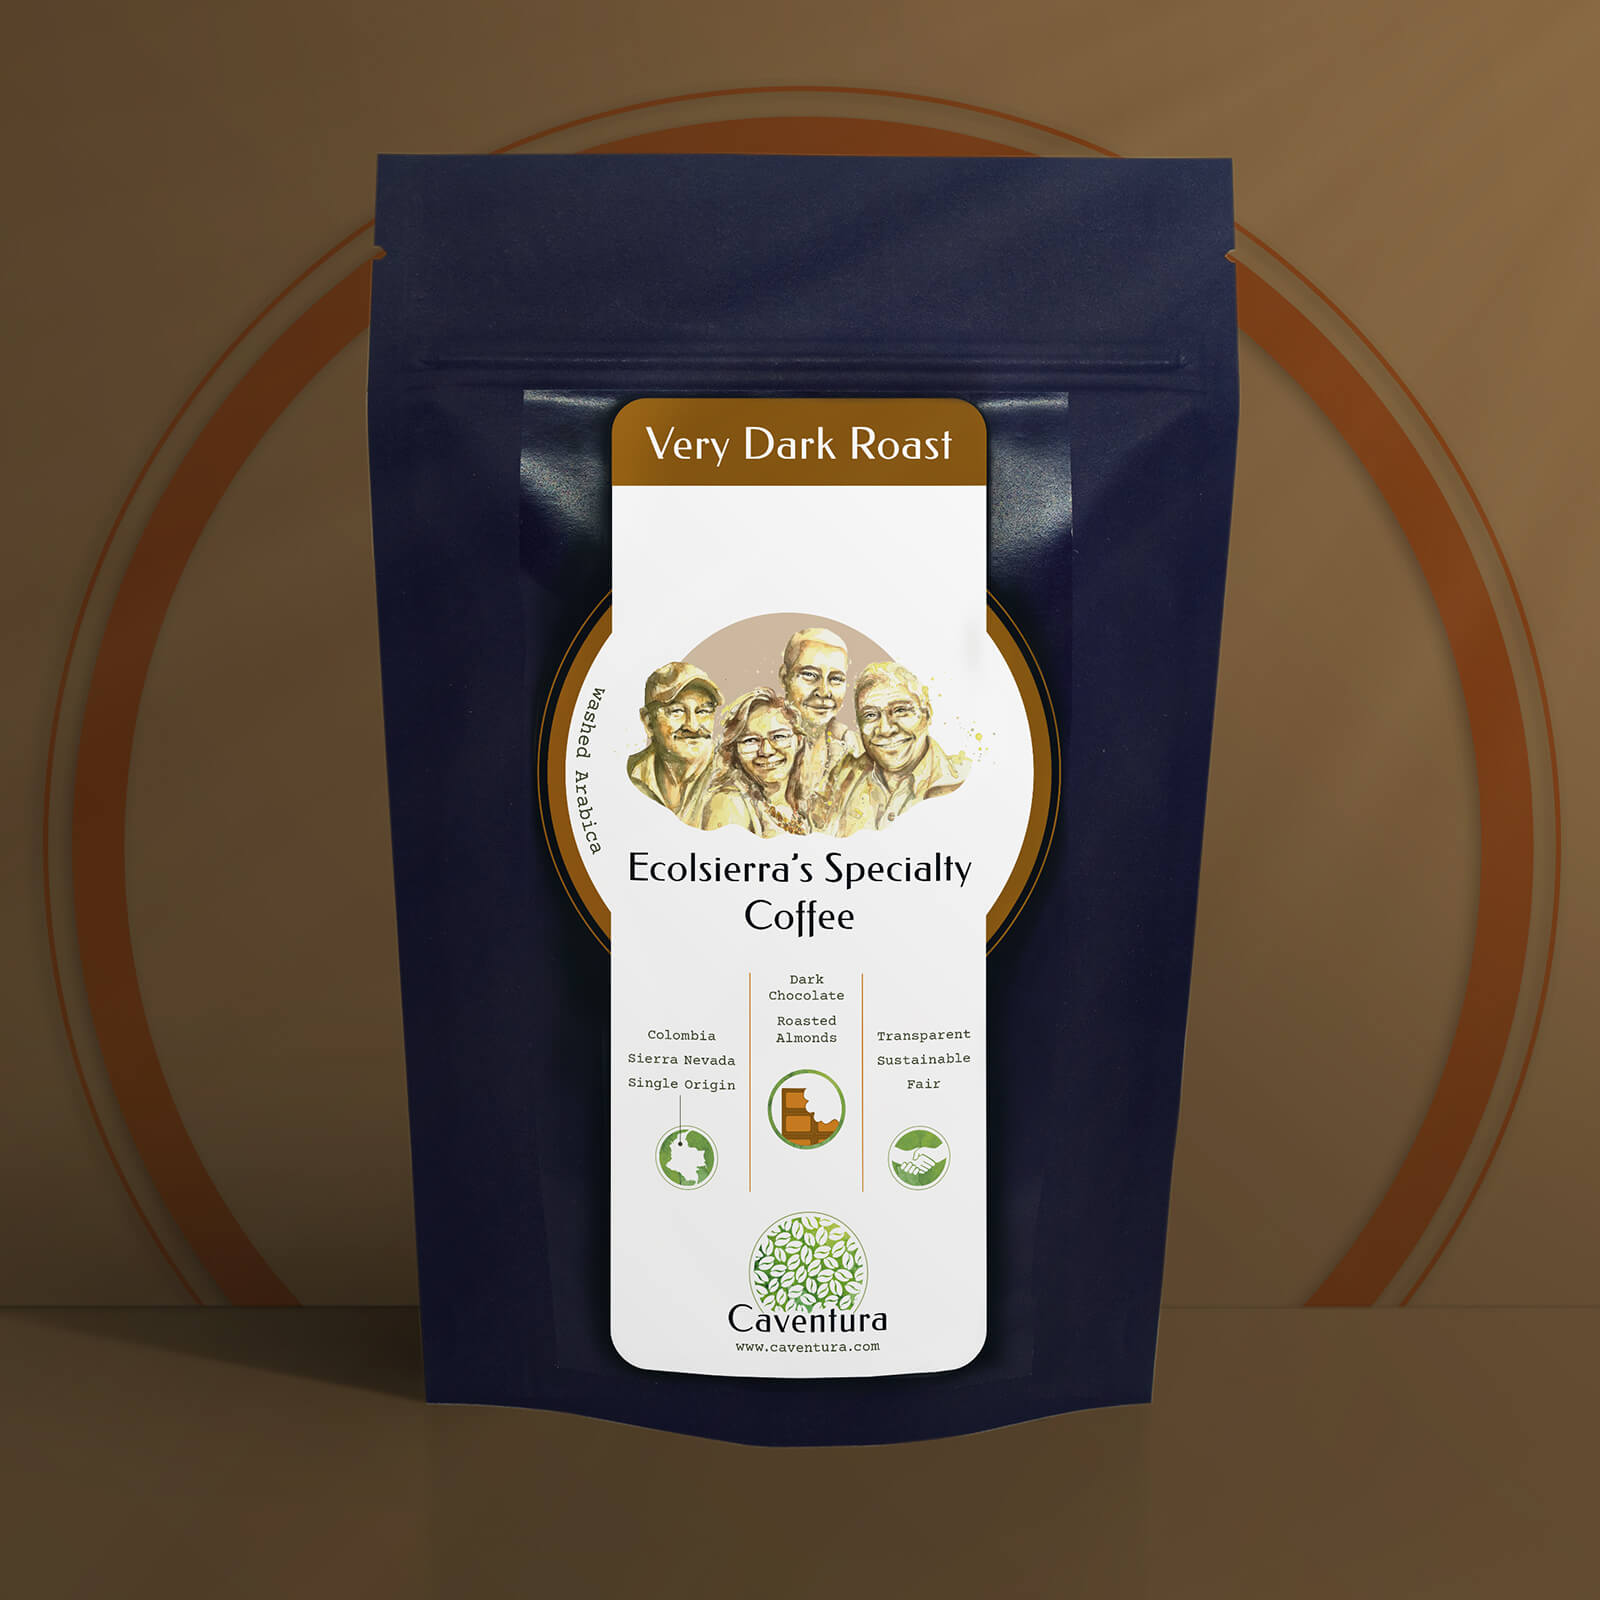 Ecolsierra's Specialty Coffee – Very Dark Roast